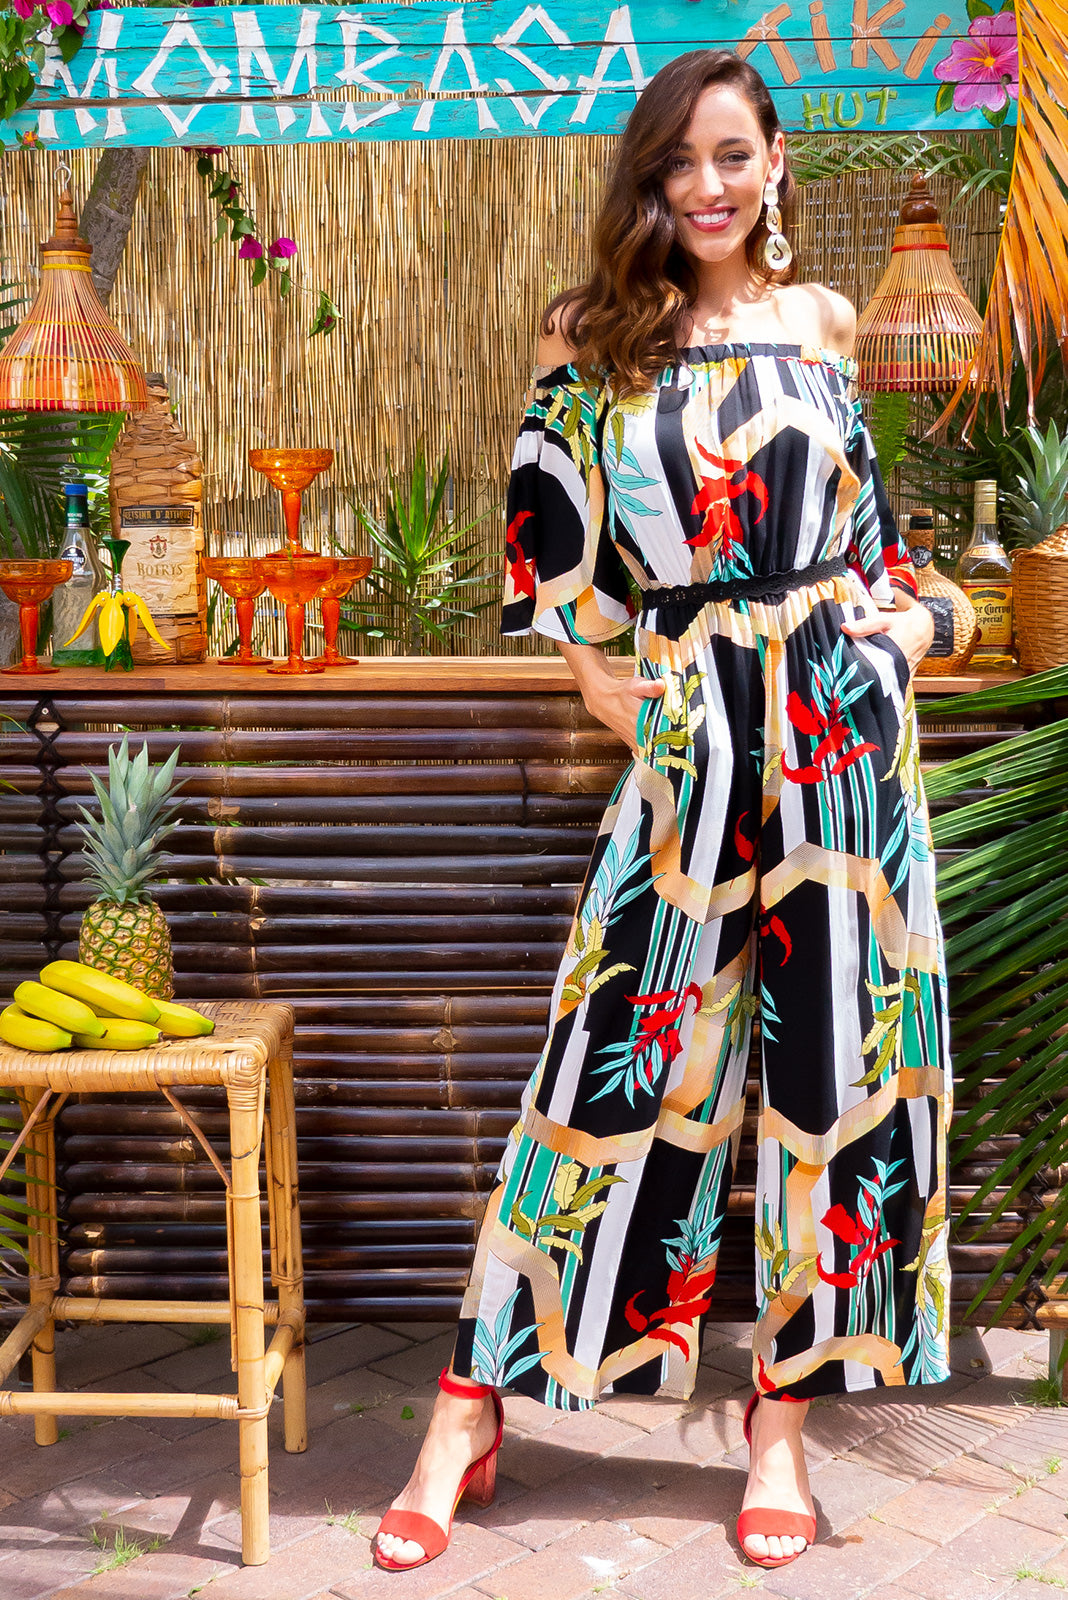 Malibu Wilde Geo Jumpsuit off the shoulder soft fit maxi jumpsuit with an elastic waist in a bright retro inspired geometric and floral print on 100% rayon with side pockets